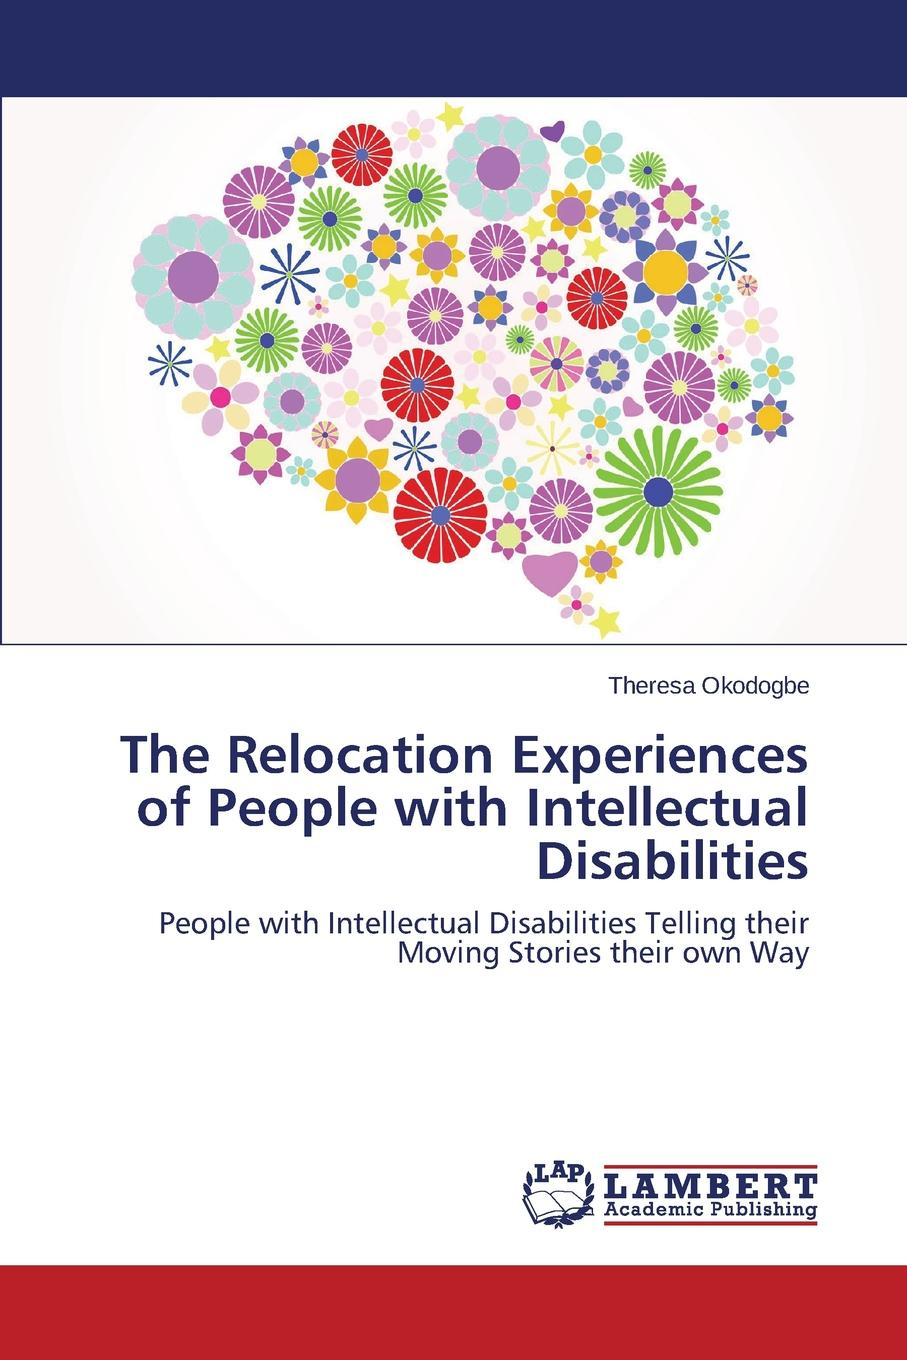 Okodogbe Theresa The Relocation Experiences of People with Intellectual Disabilities